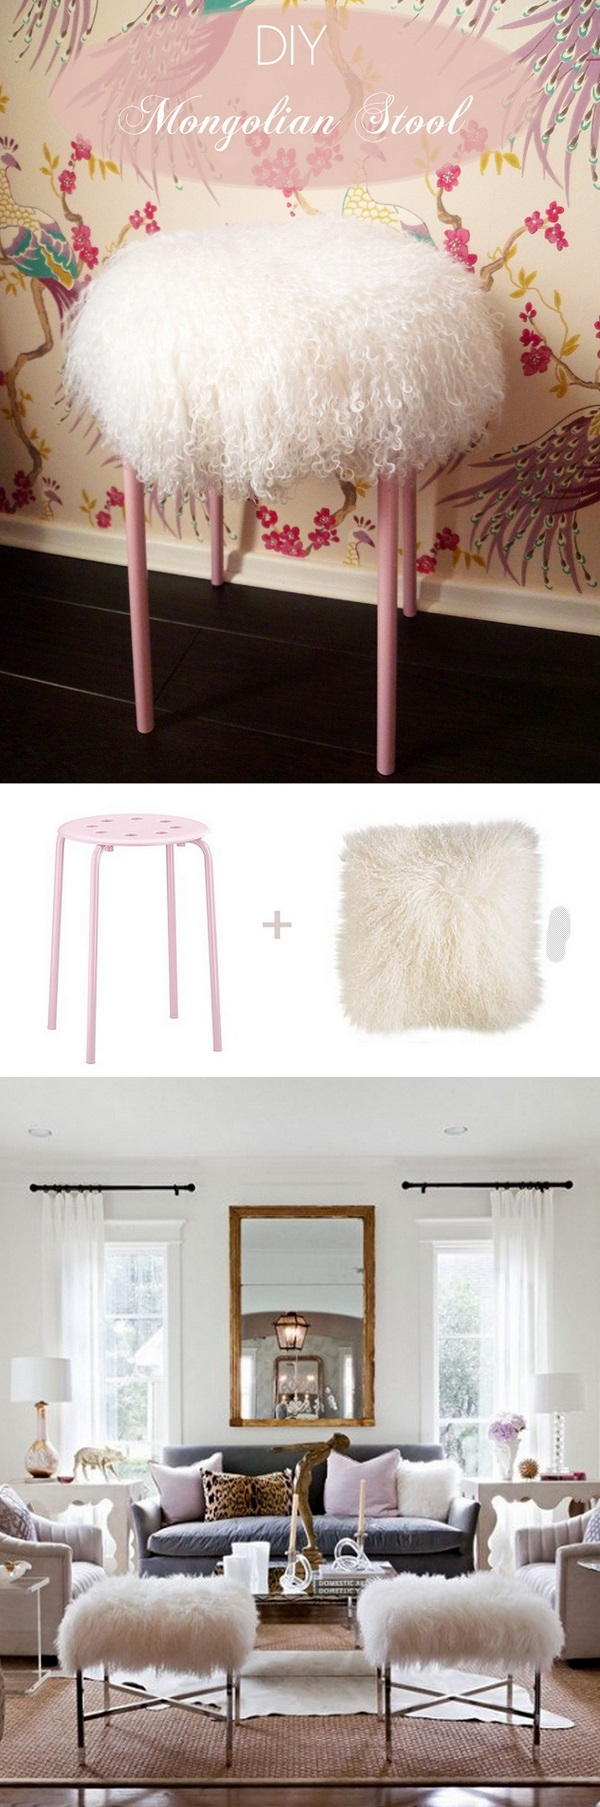 Check out the tutorial how to make a DIY Mongolian stool for home decor